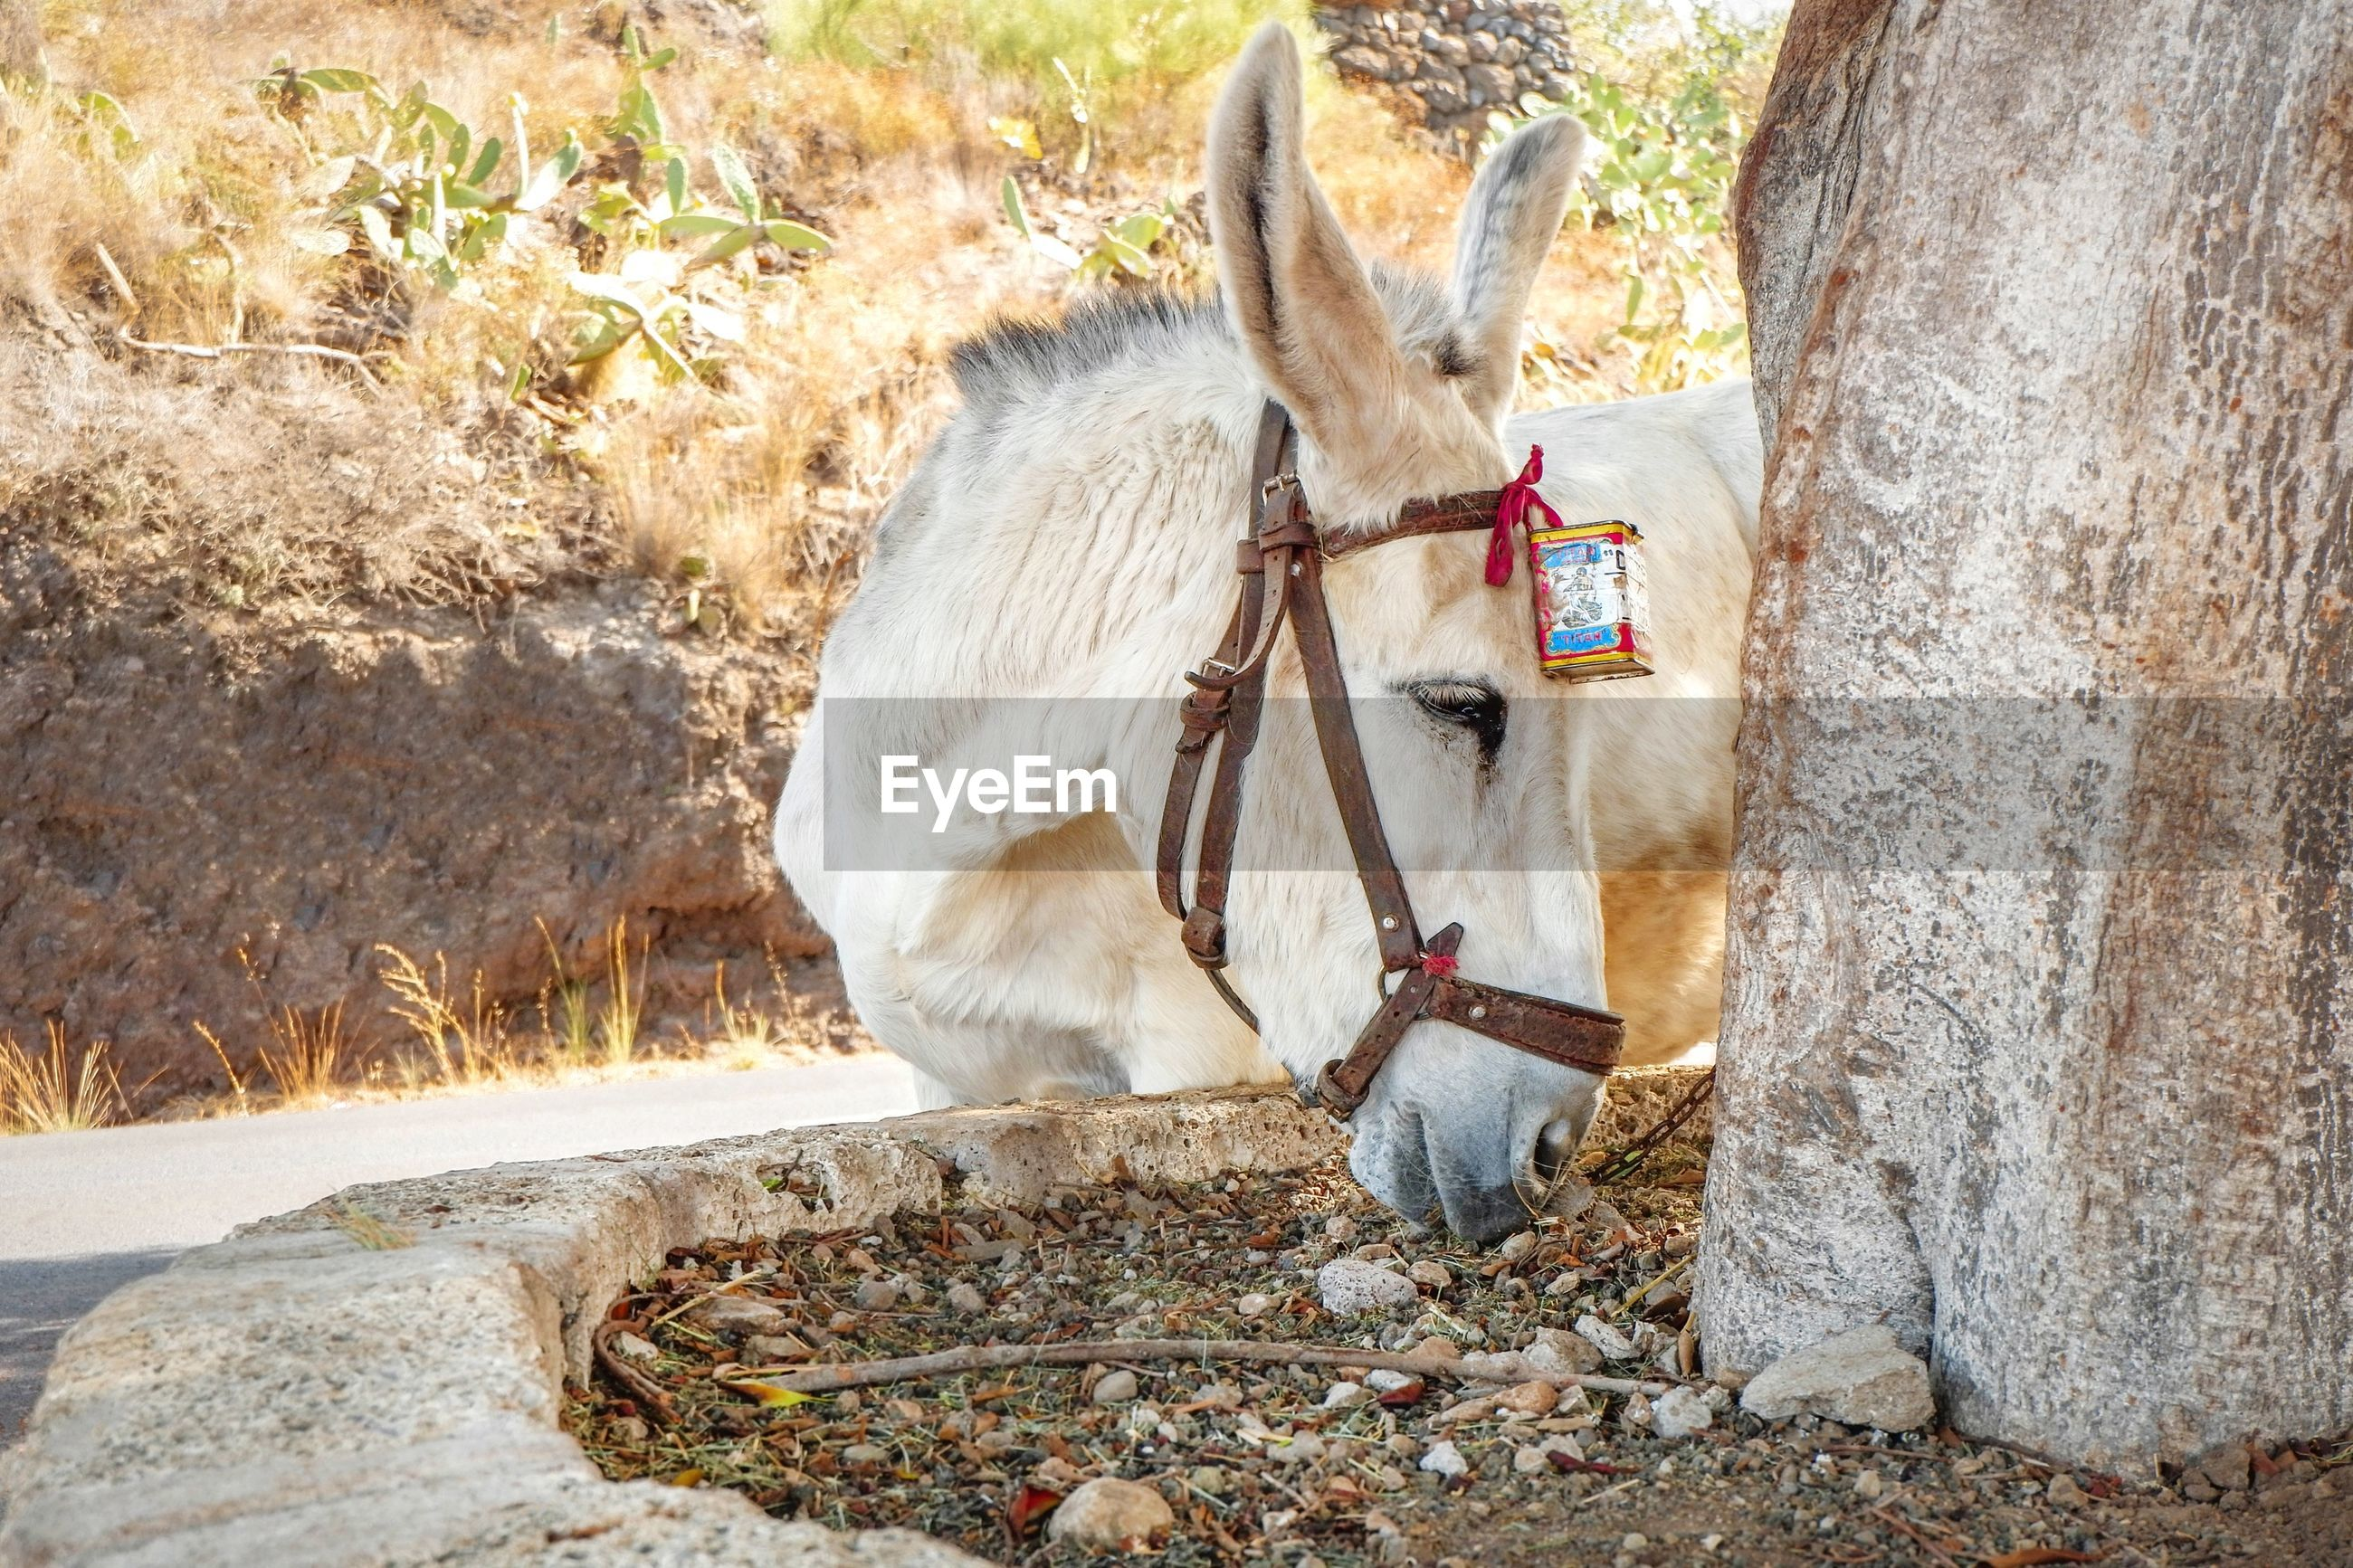 Donkey standing next to a tree